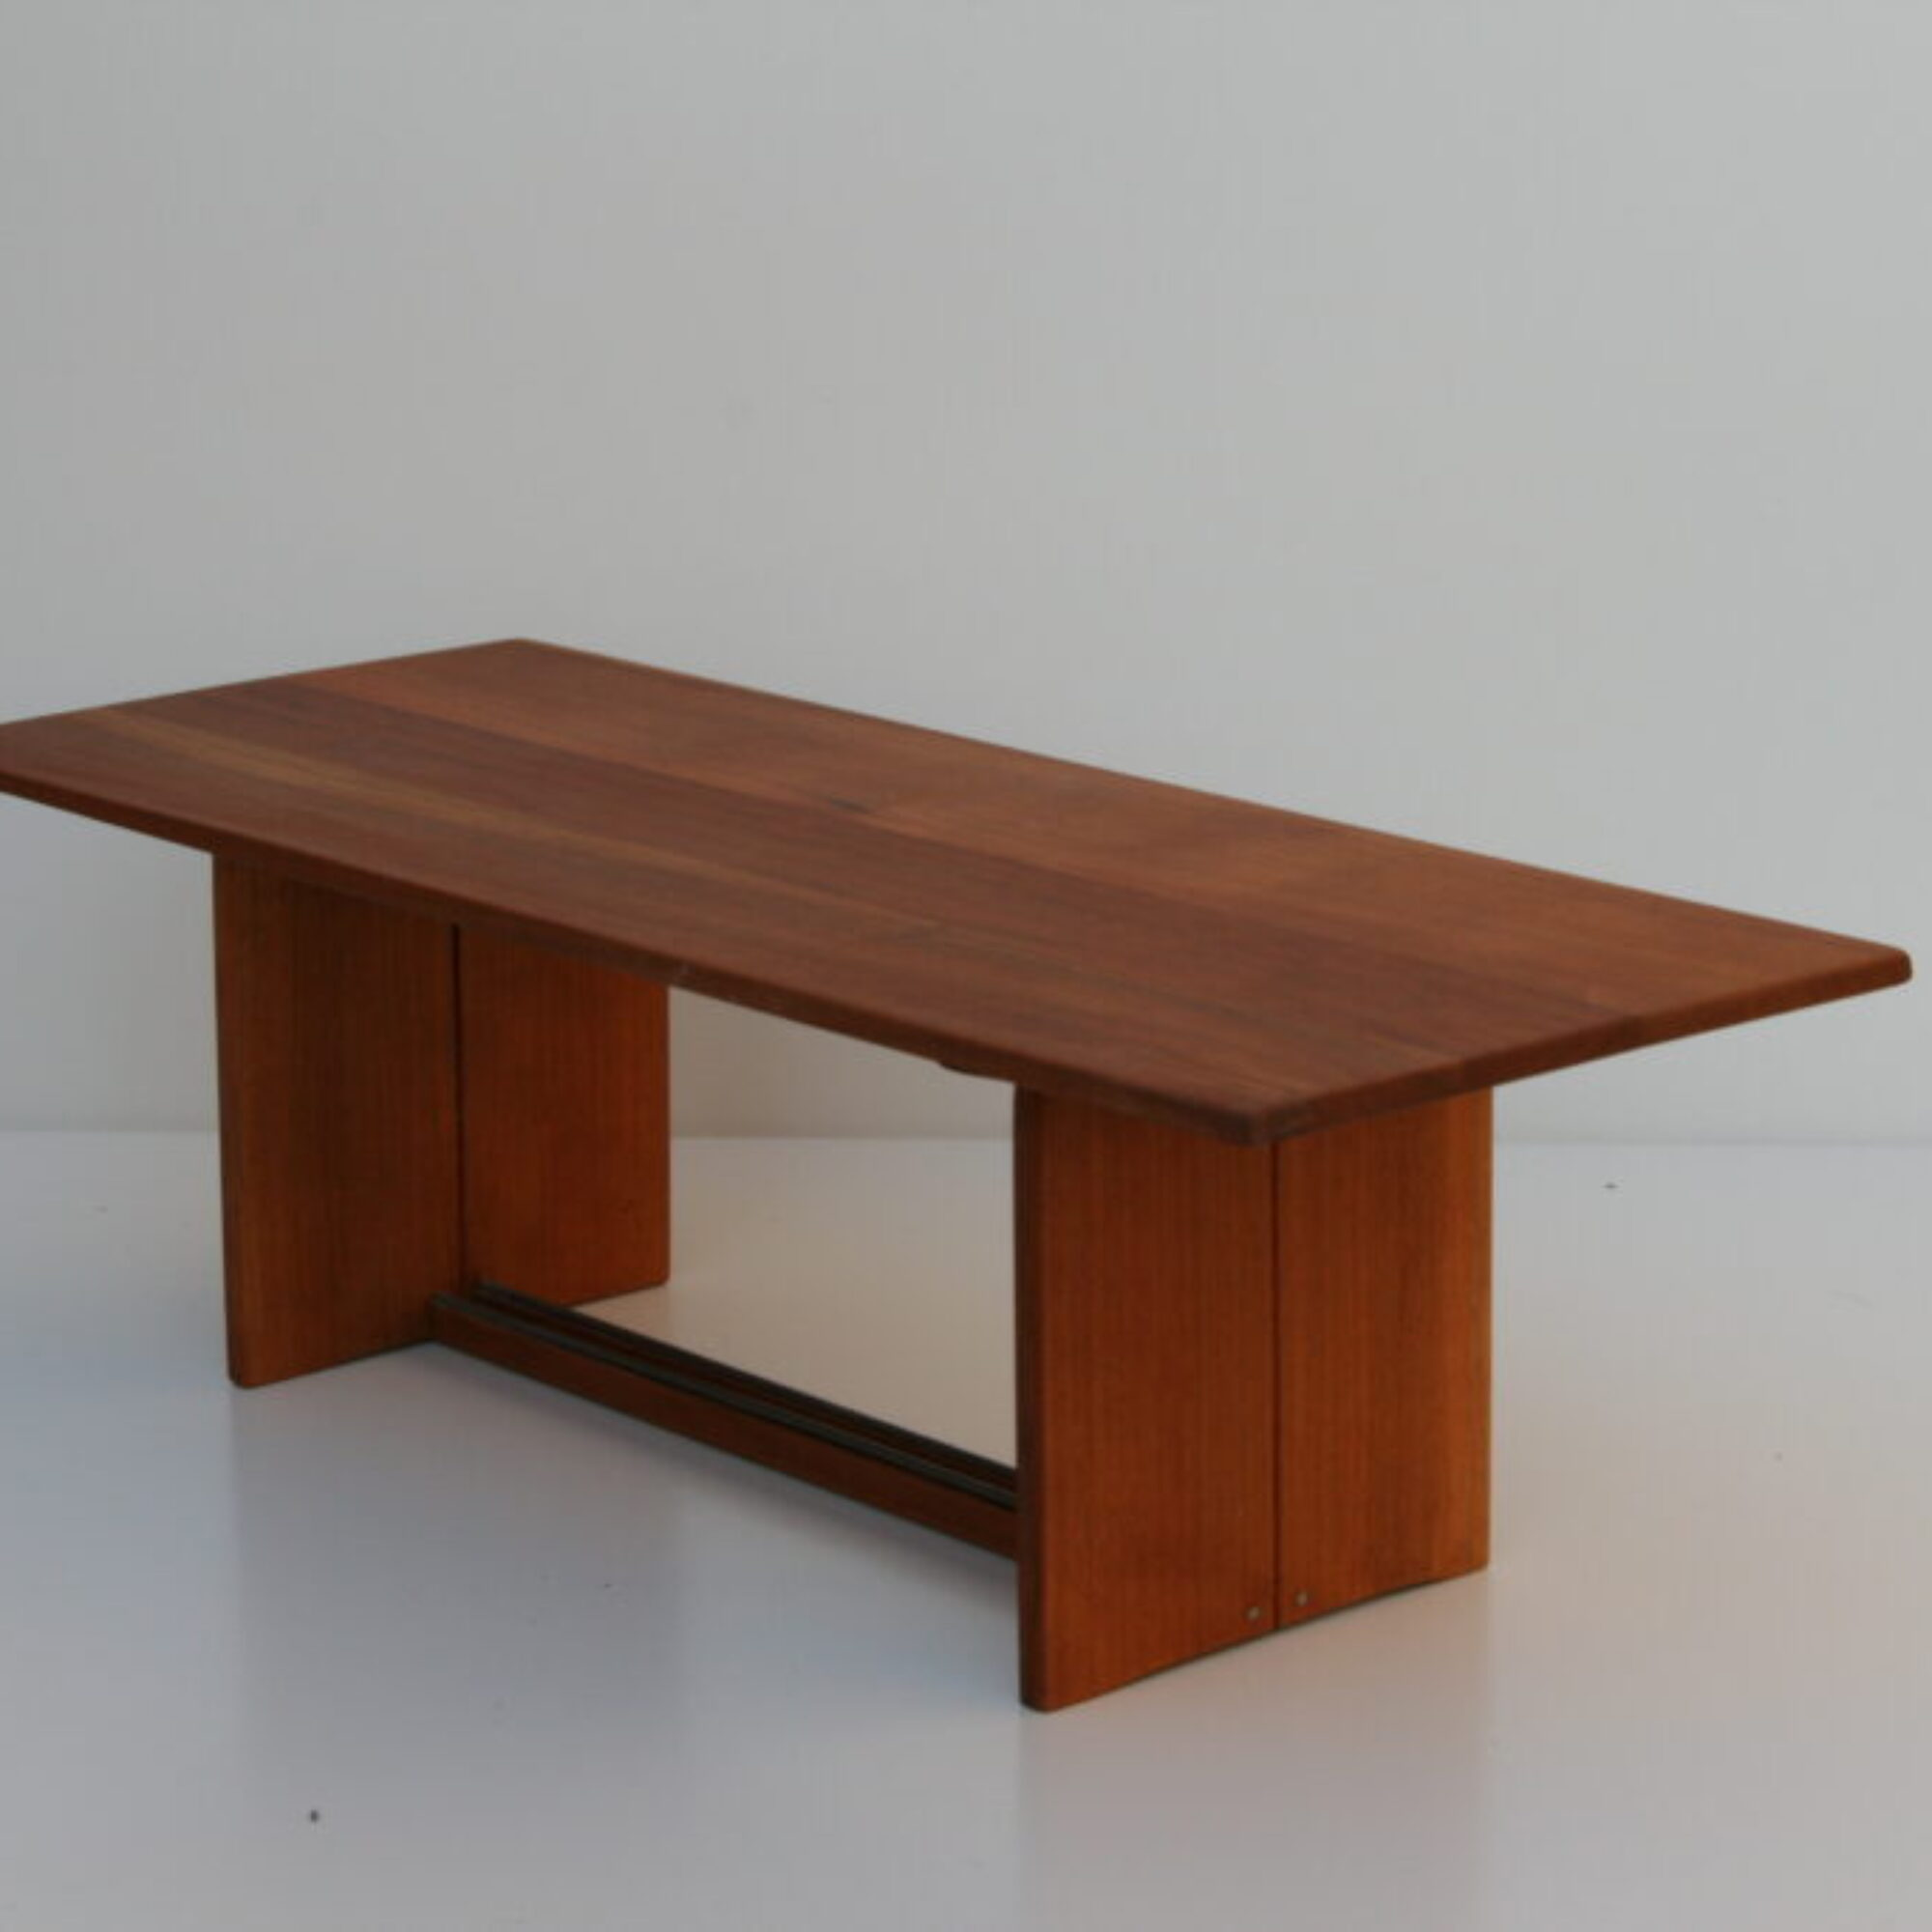 Model of dining table